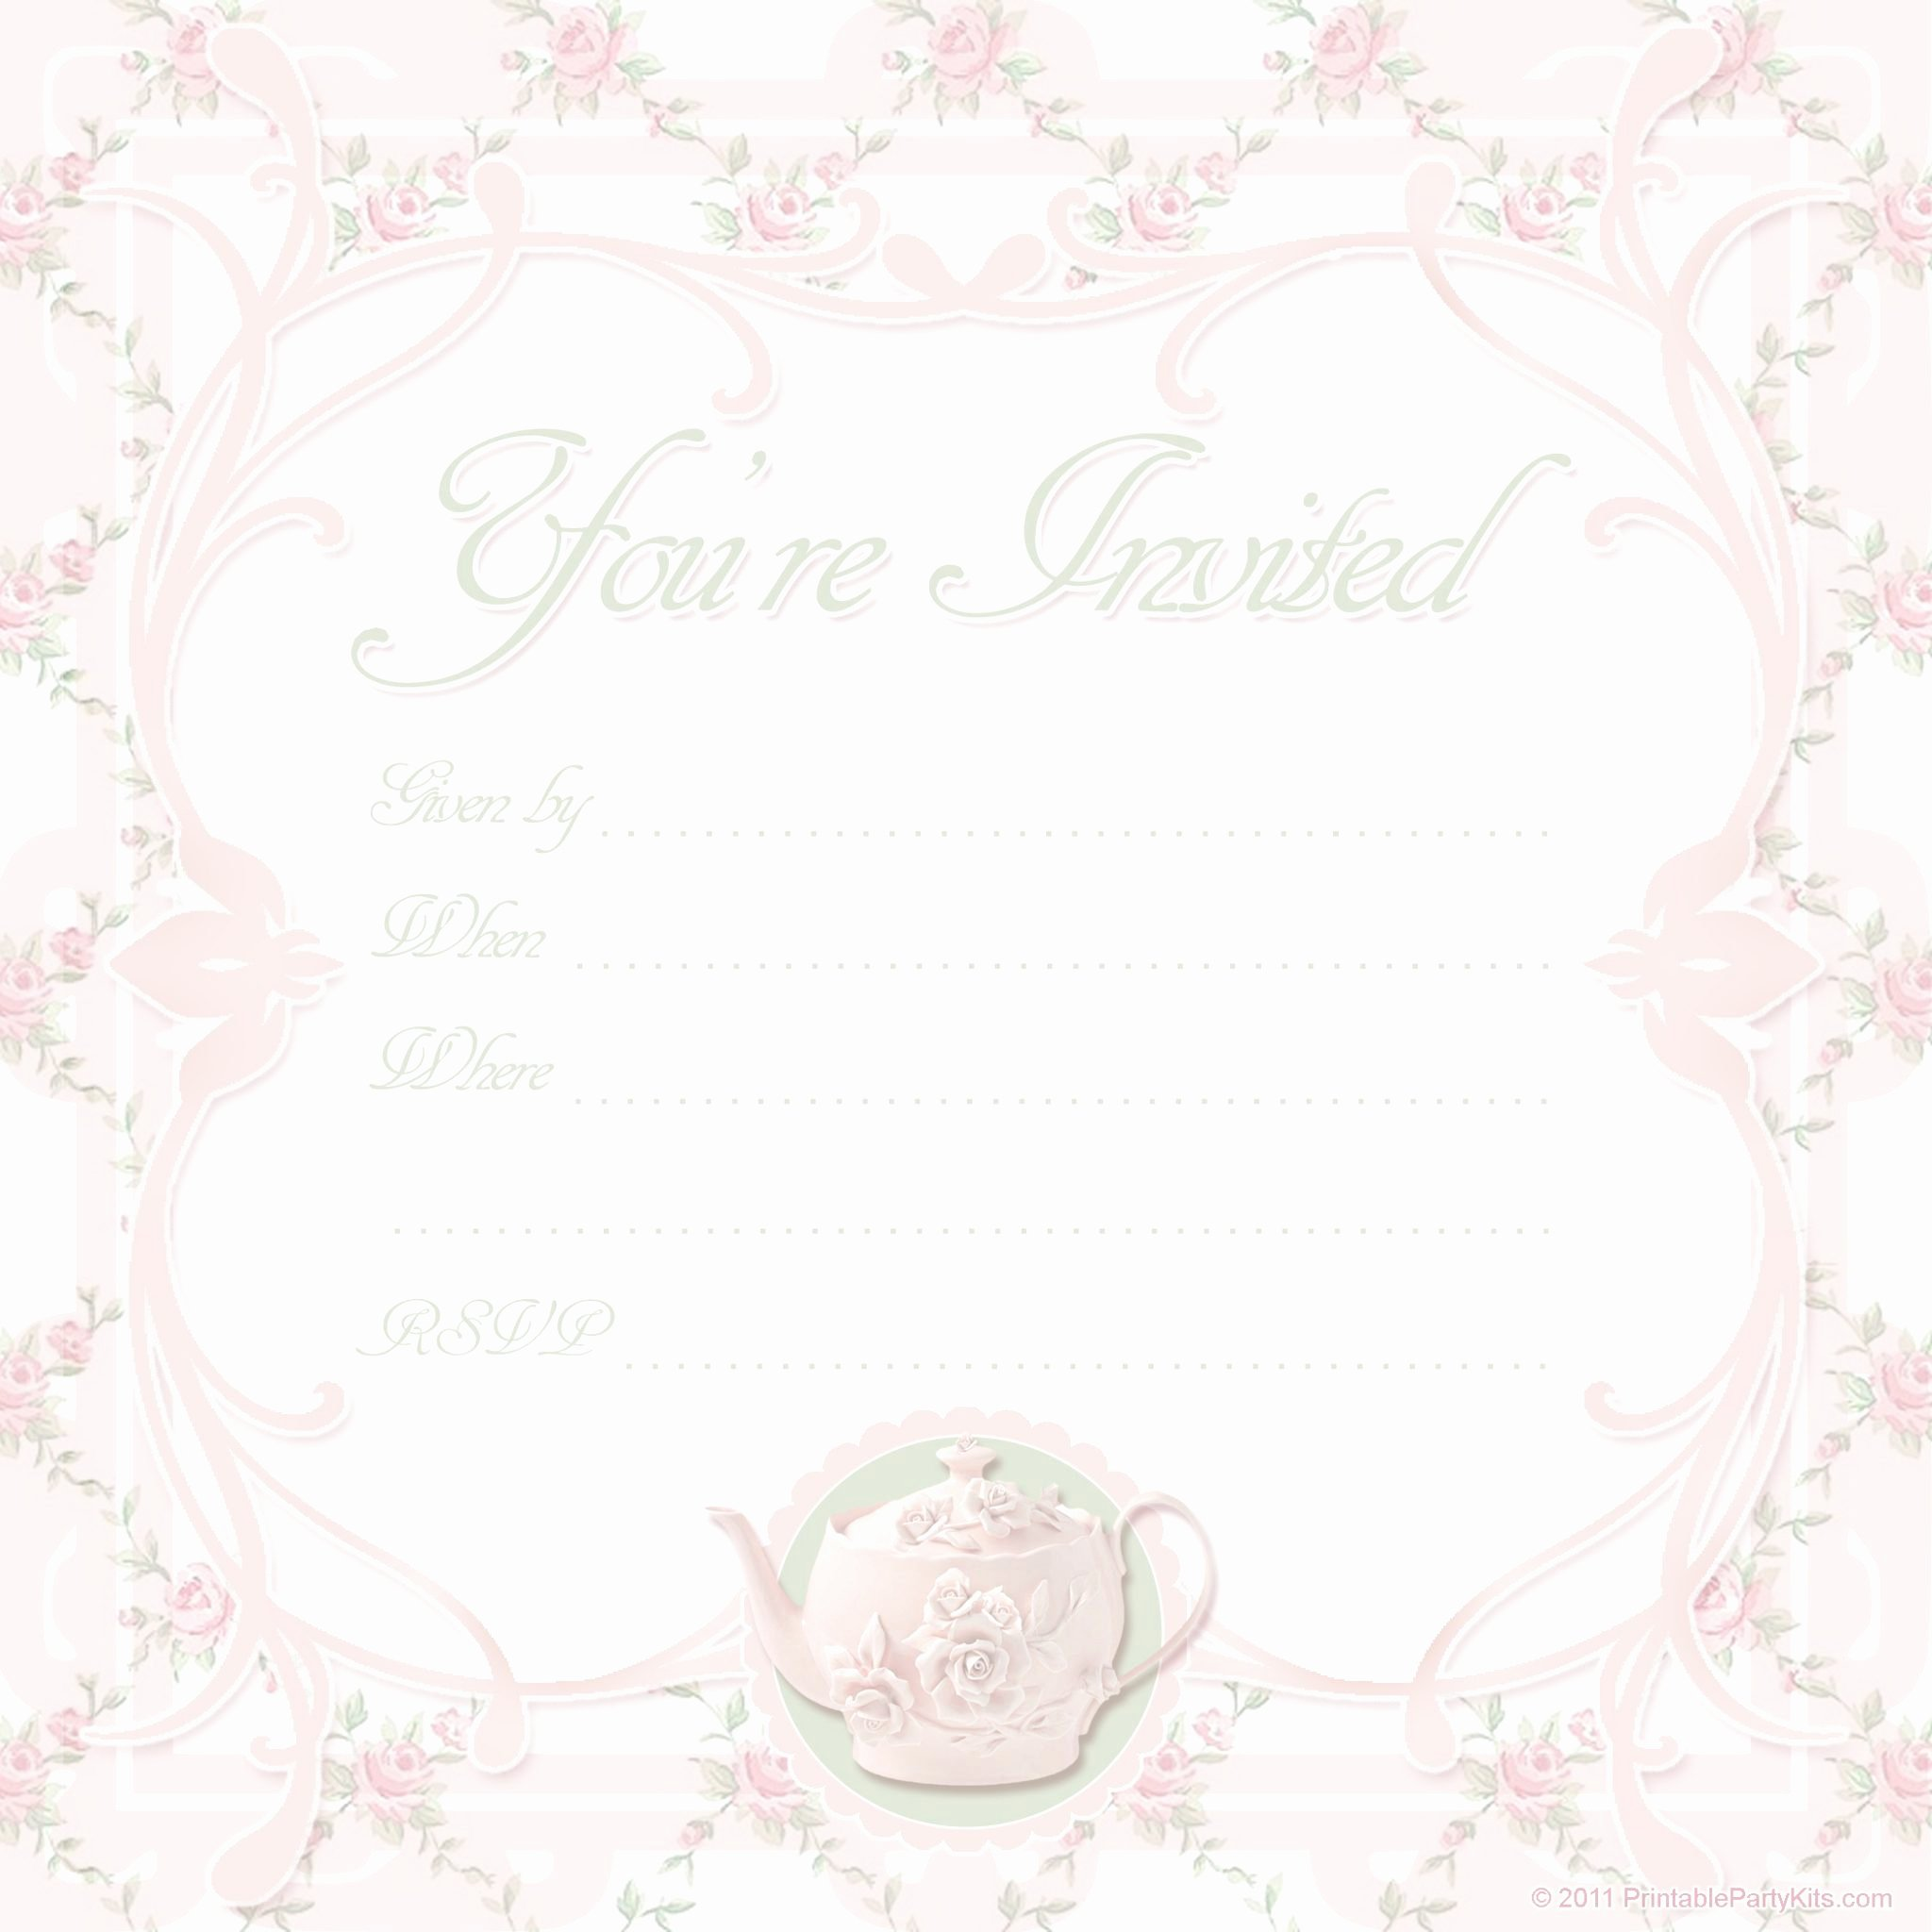 Tea Party Invitation Template Beautiful Free Printable Tea Party Invite Template Printable Party Kits